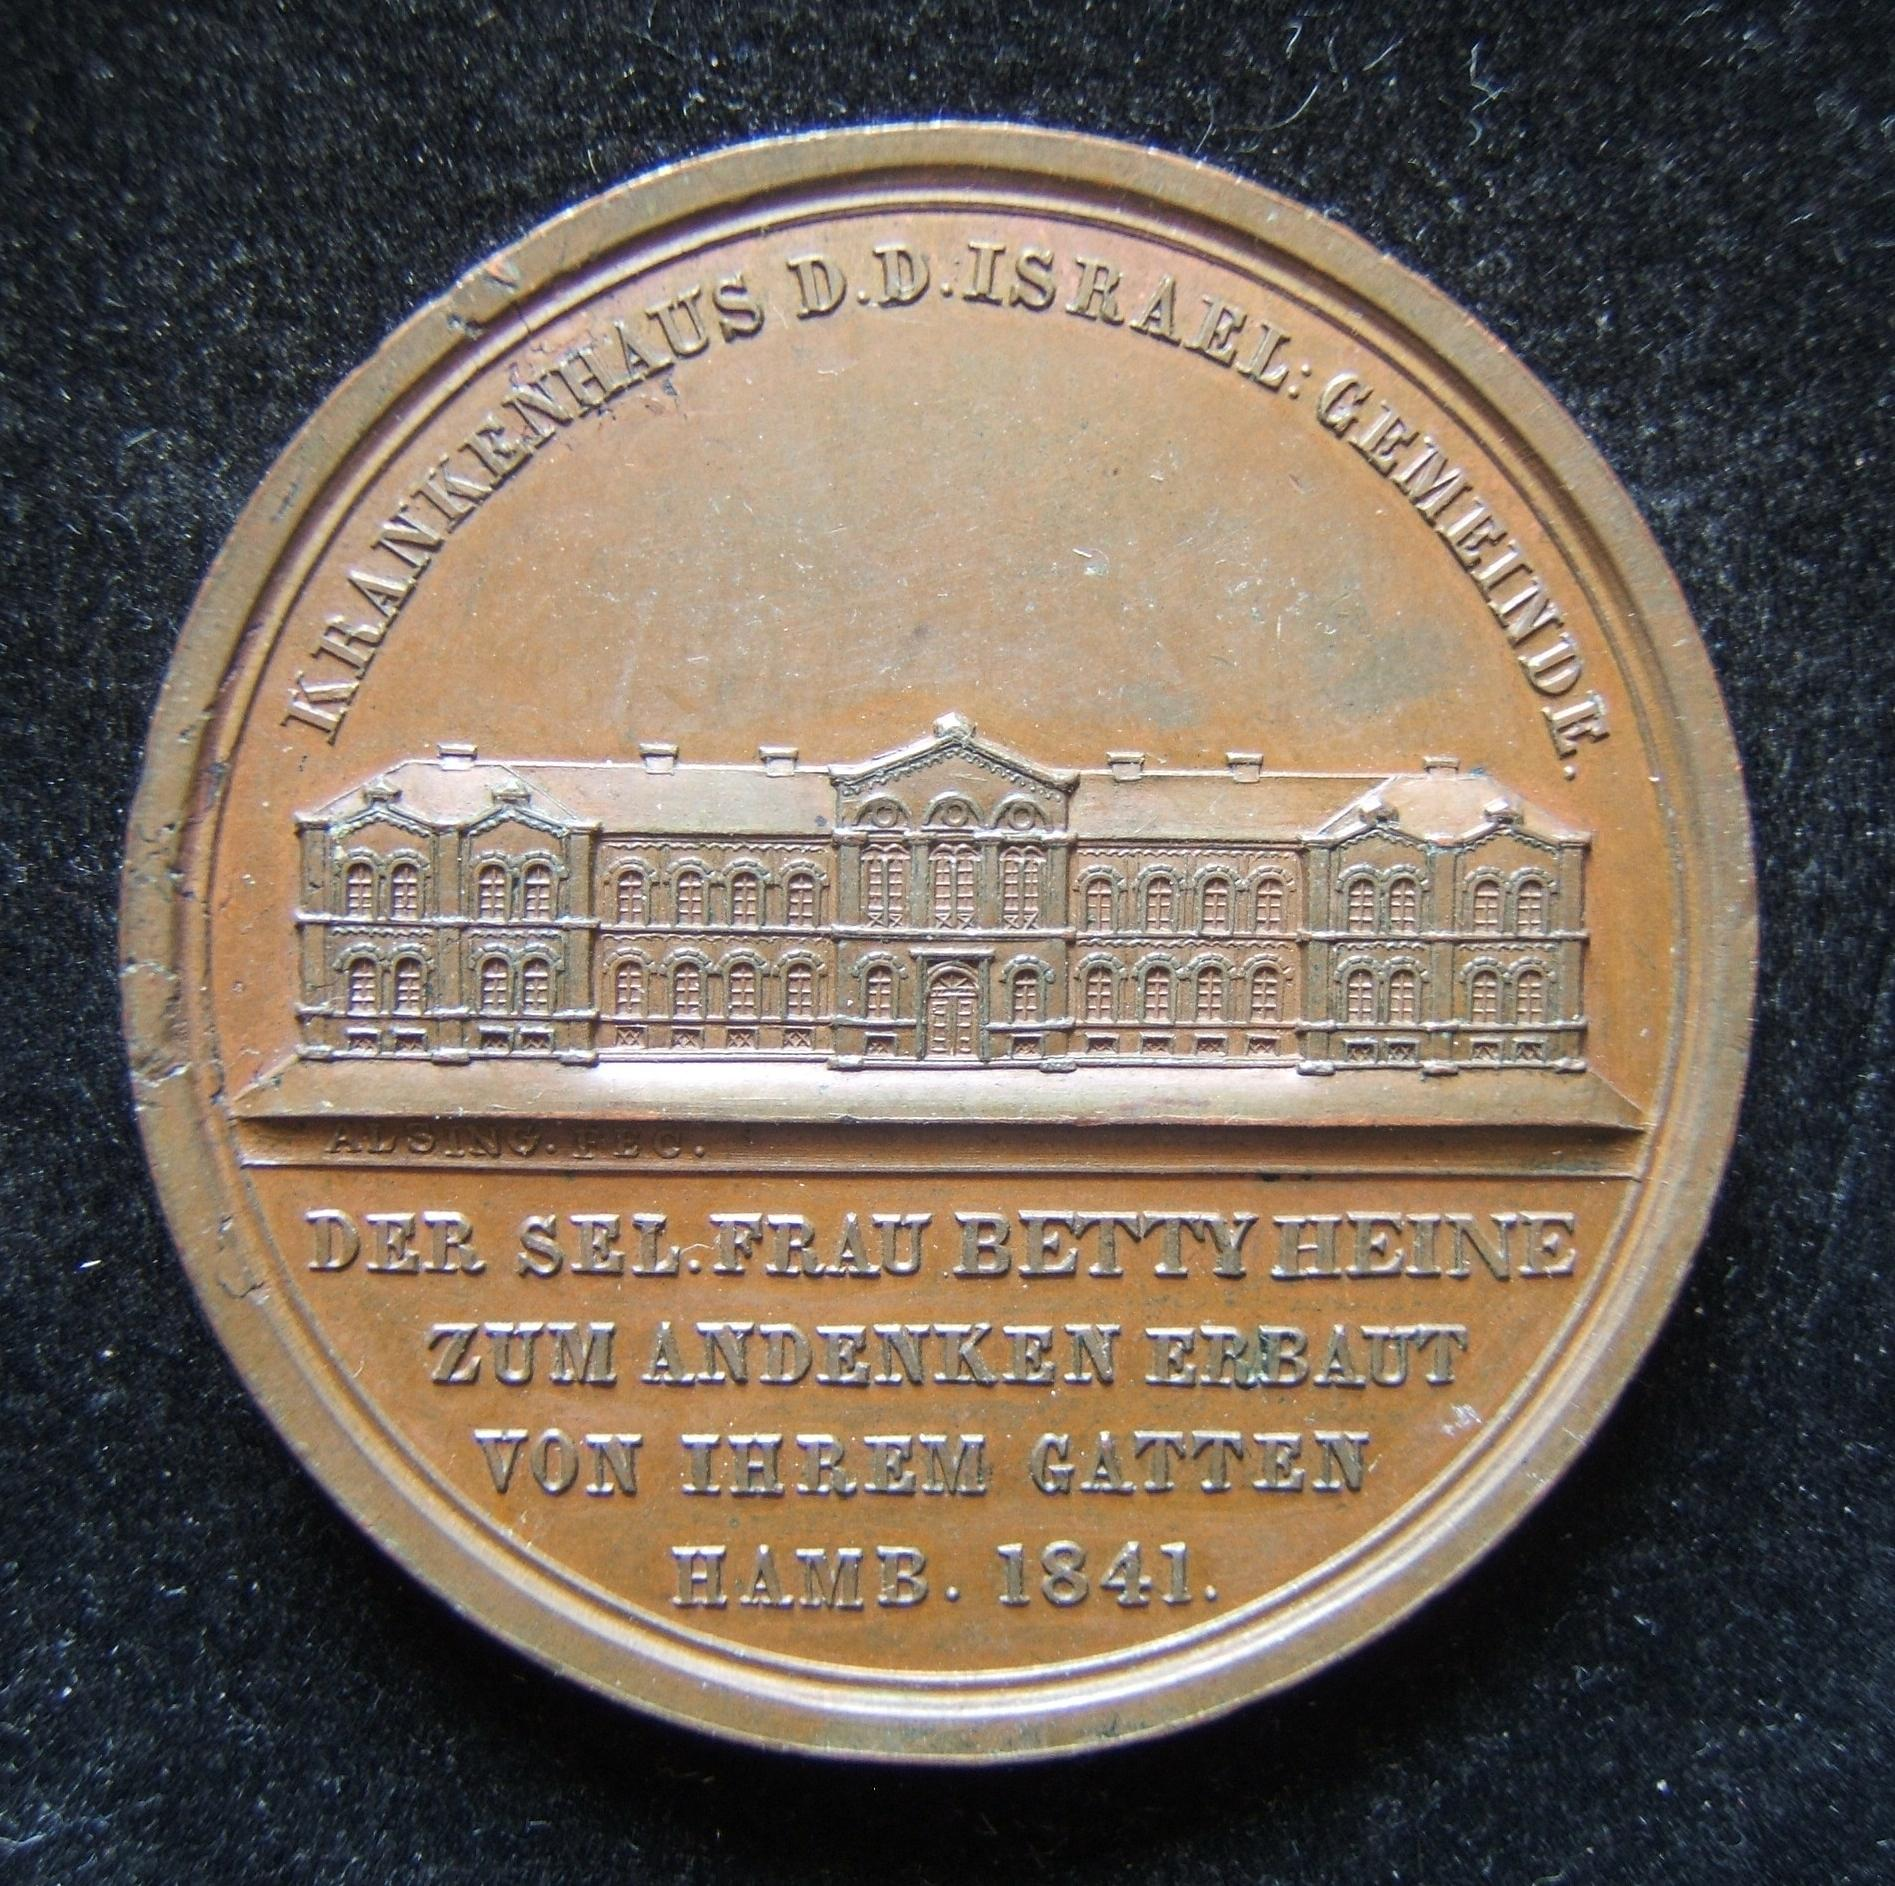 Germany: The New Jewish Hospital in Hamburg large medal by Alsing, 1841